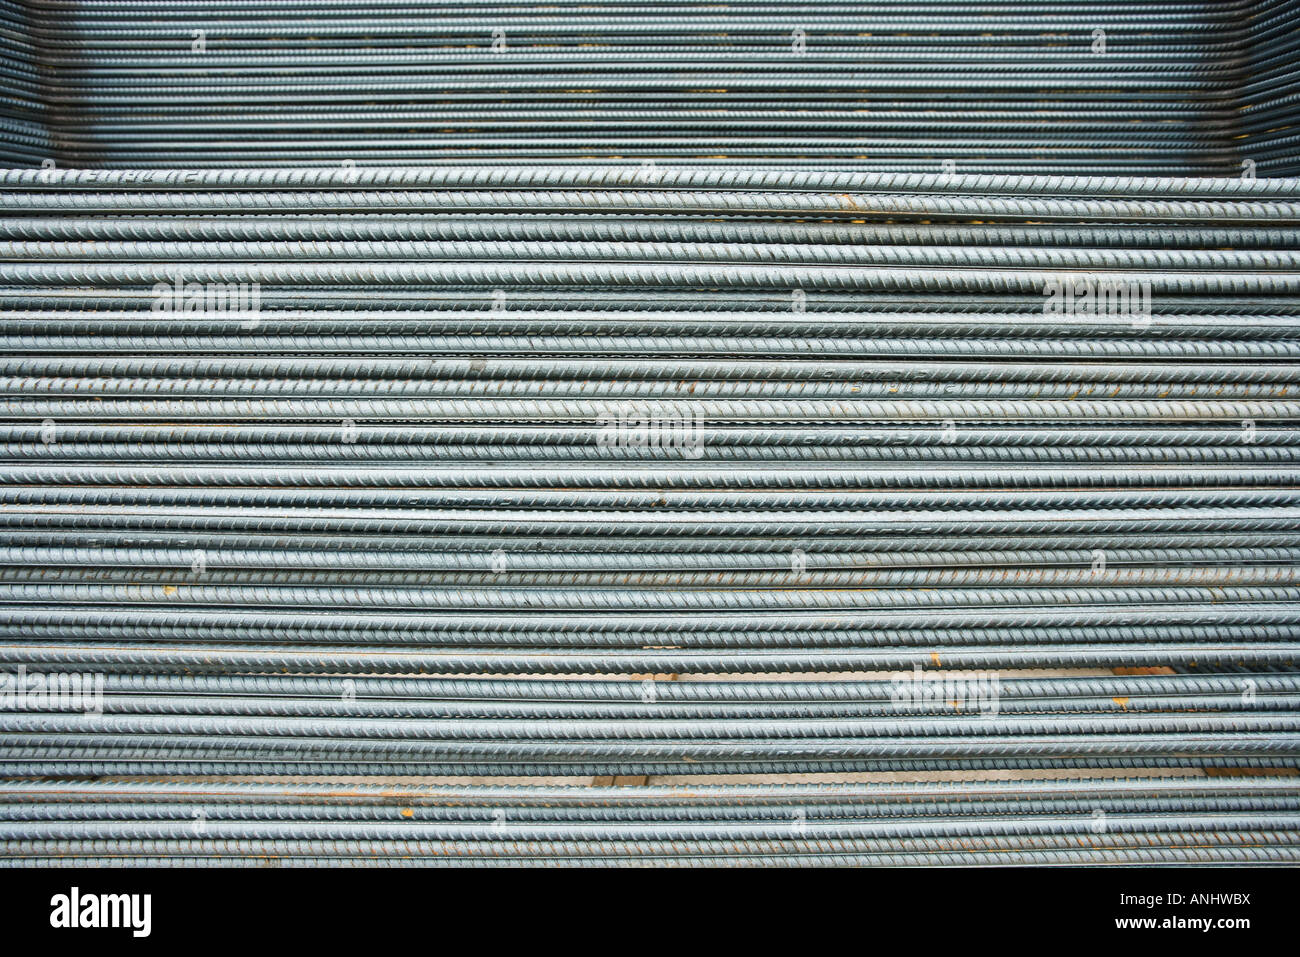 Metal Rods Full Frame